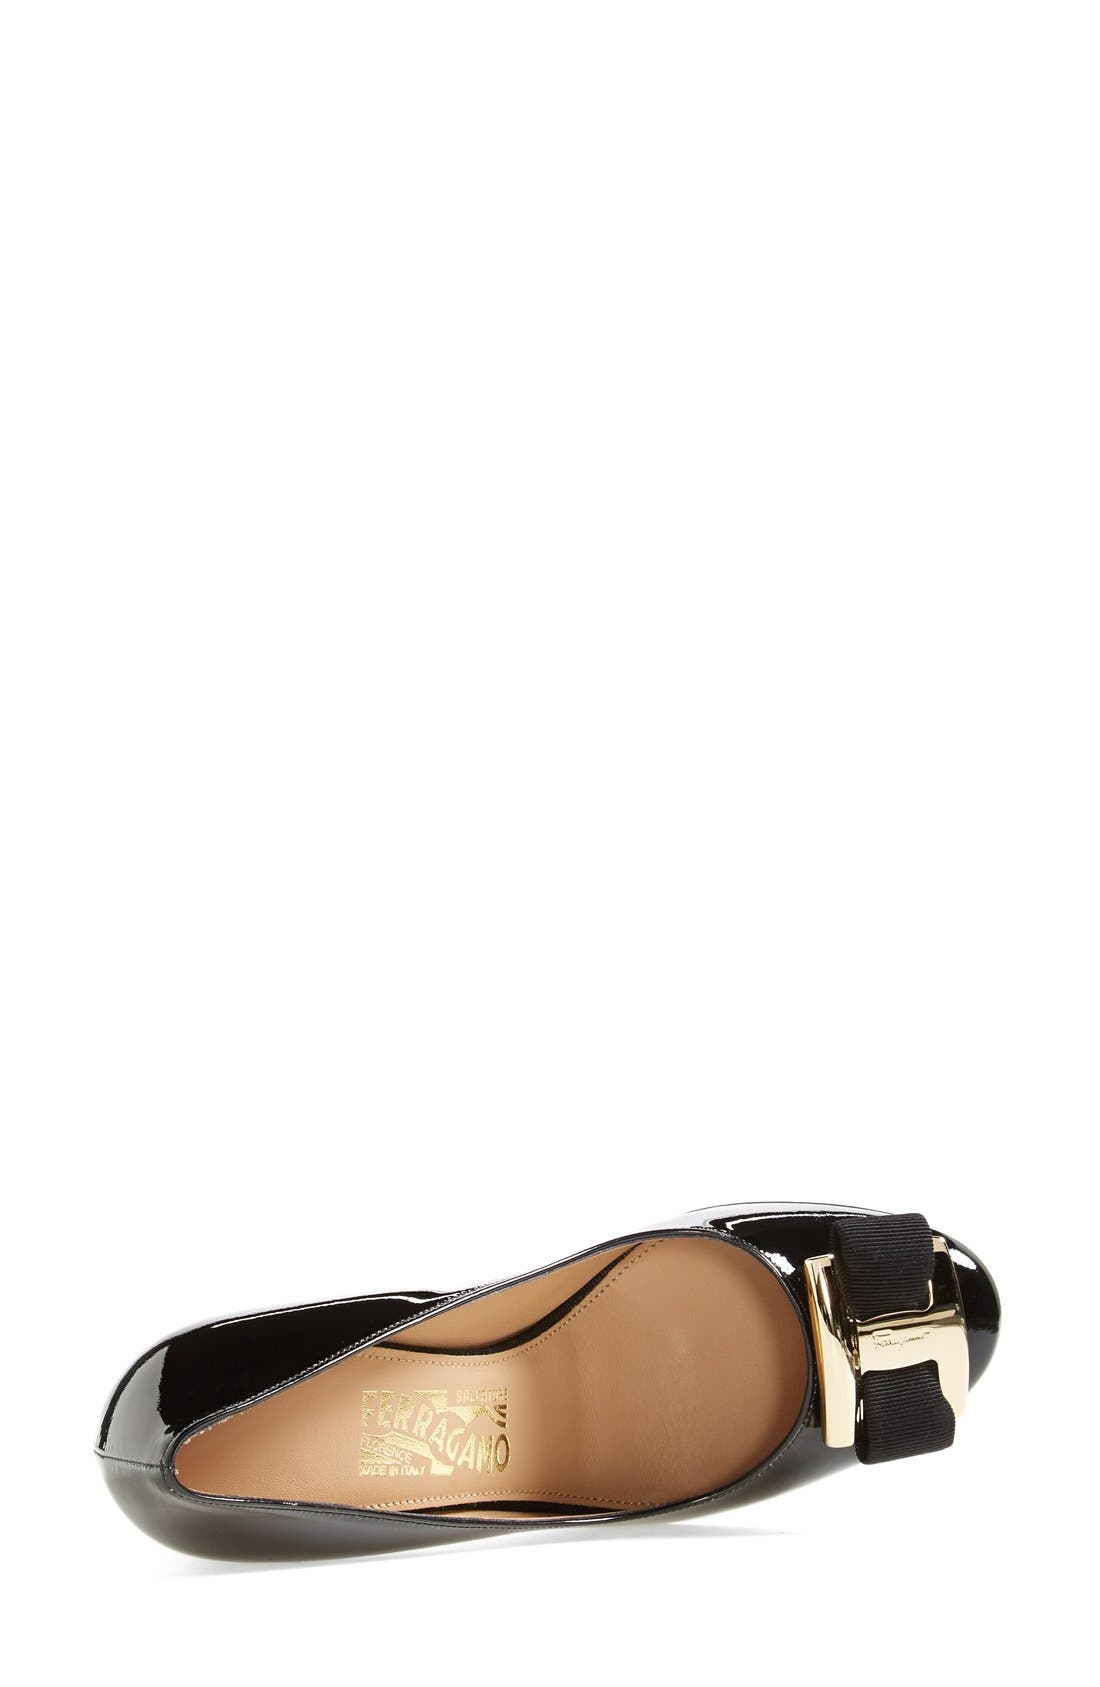 Alternate Image 4  - Salvatore Ferragamo 'Ninna 85' Pump (Women)